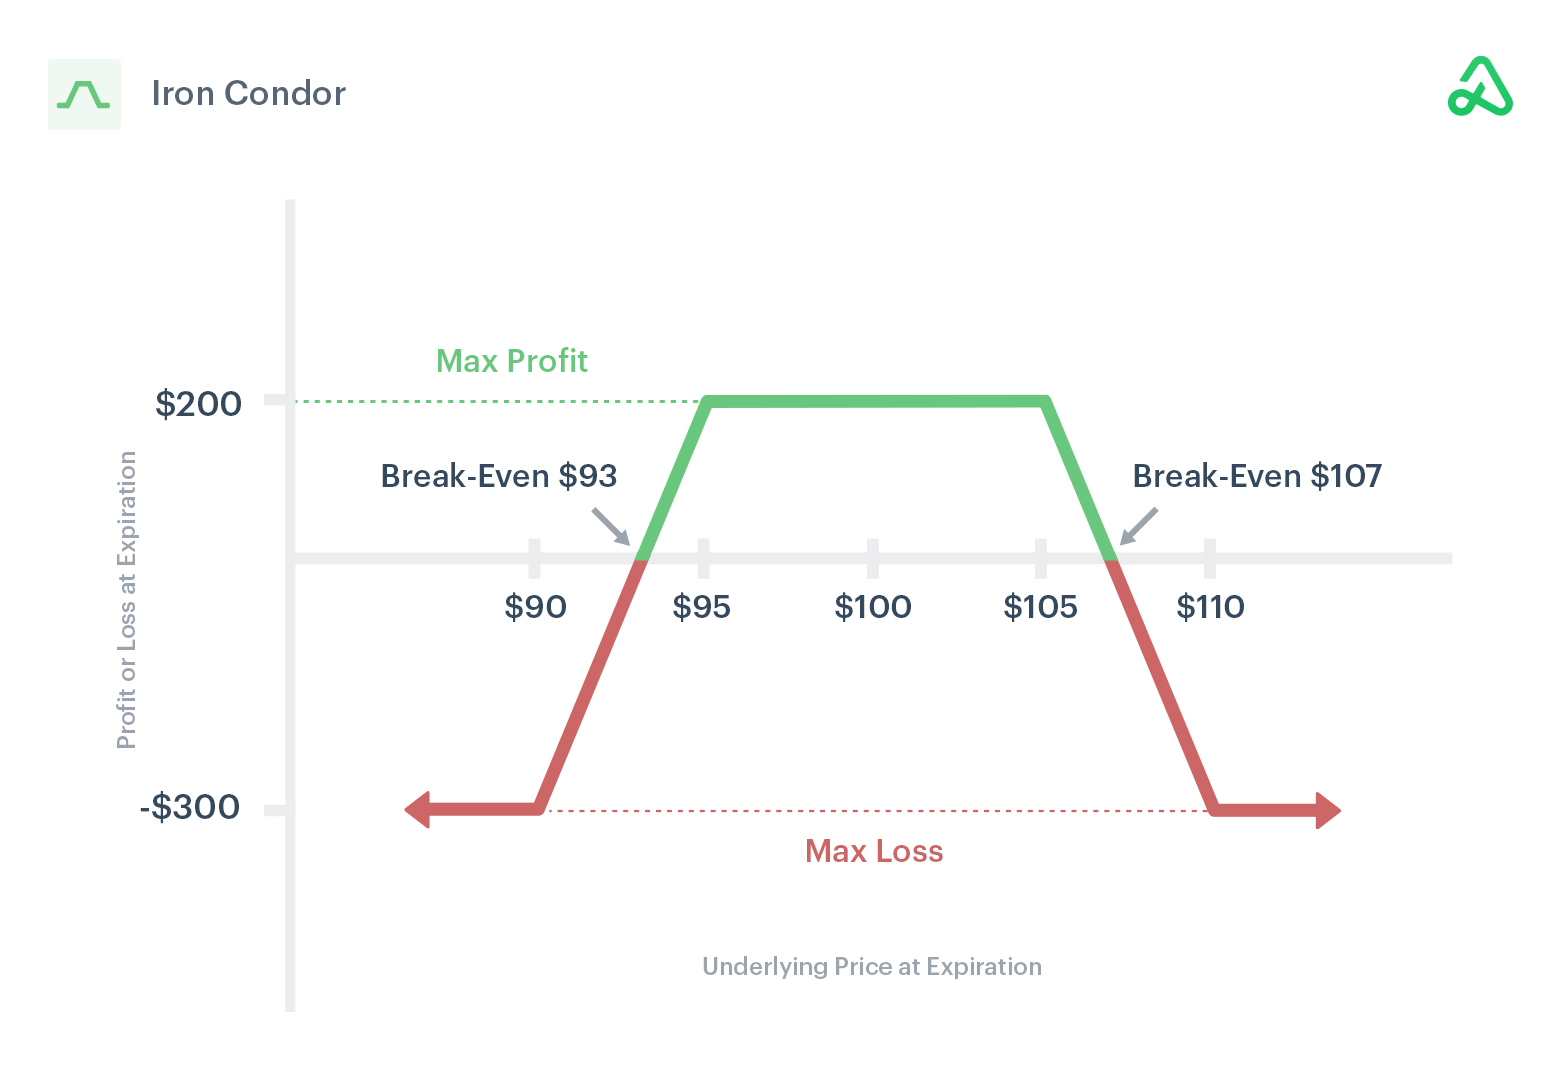 Image of iron condor payoff diagram showing max profit, max loss, and break-even points